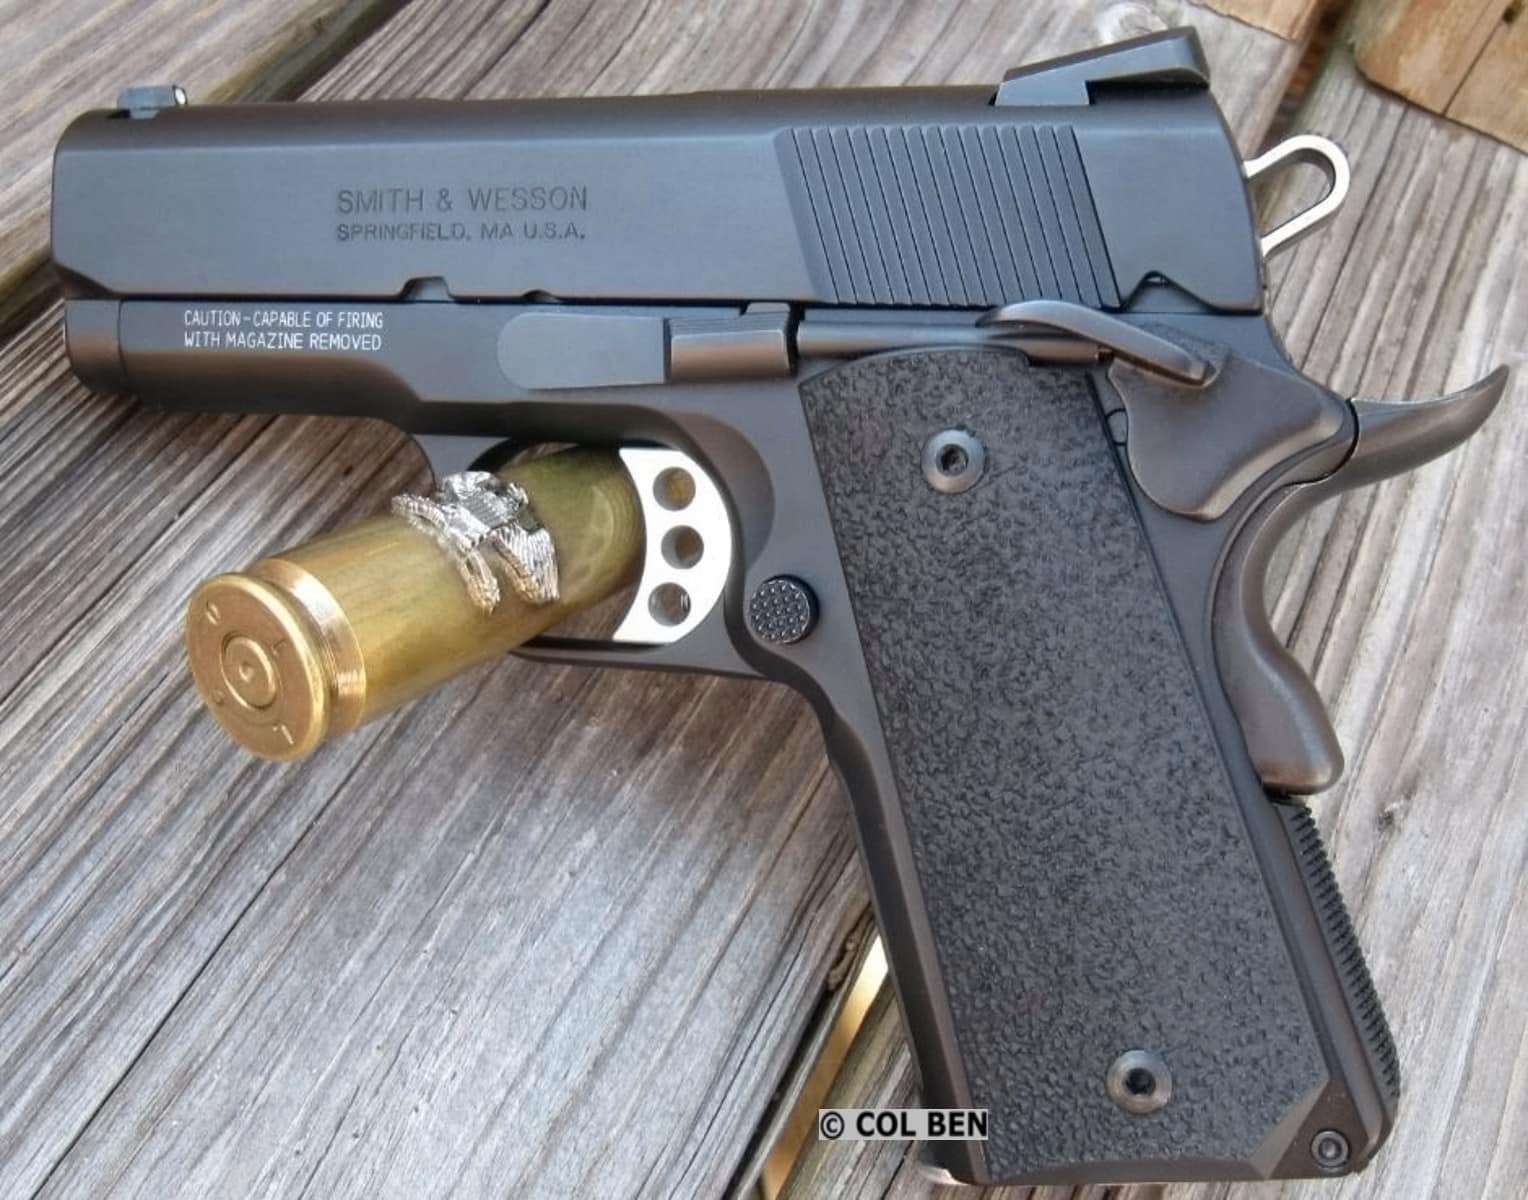 Top Performing & Concealable 1911 Sub-Compact 9mm Pistols - USA Carry